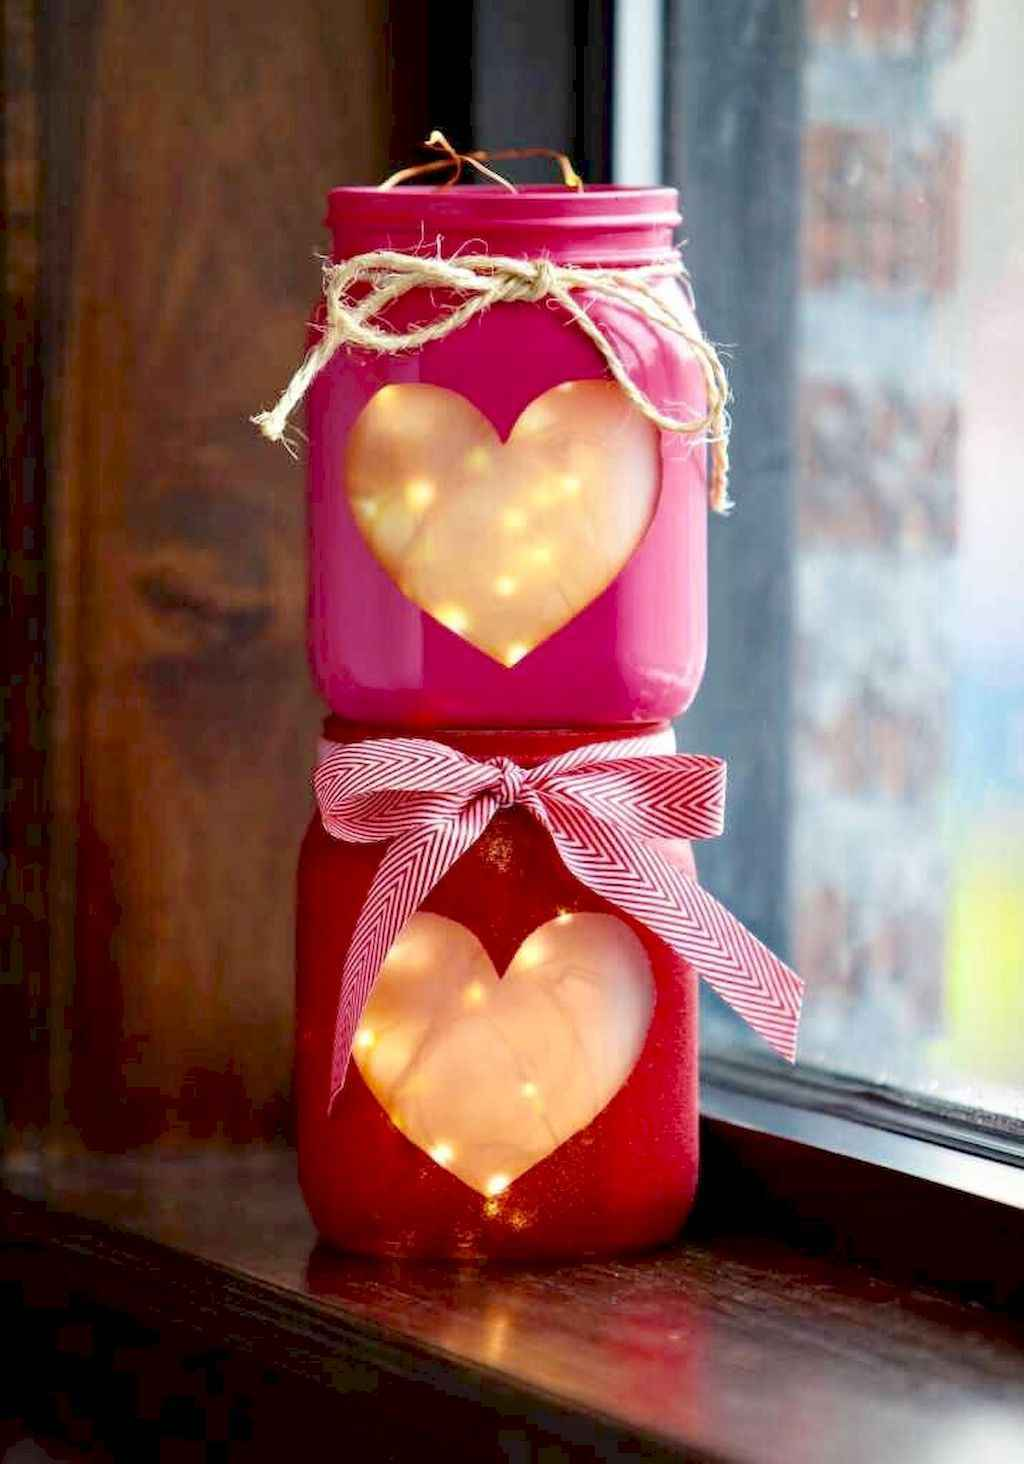 60 Romantic Valentines Crafts Ideas On A Budget (25)